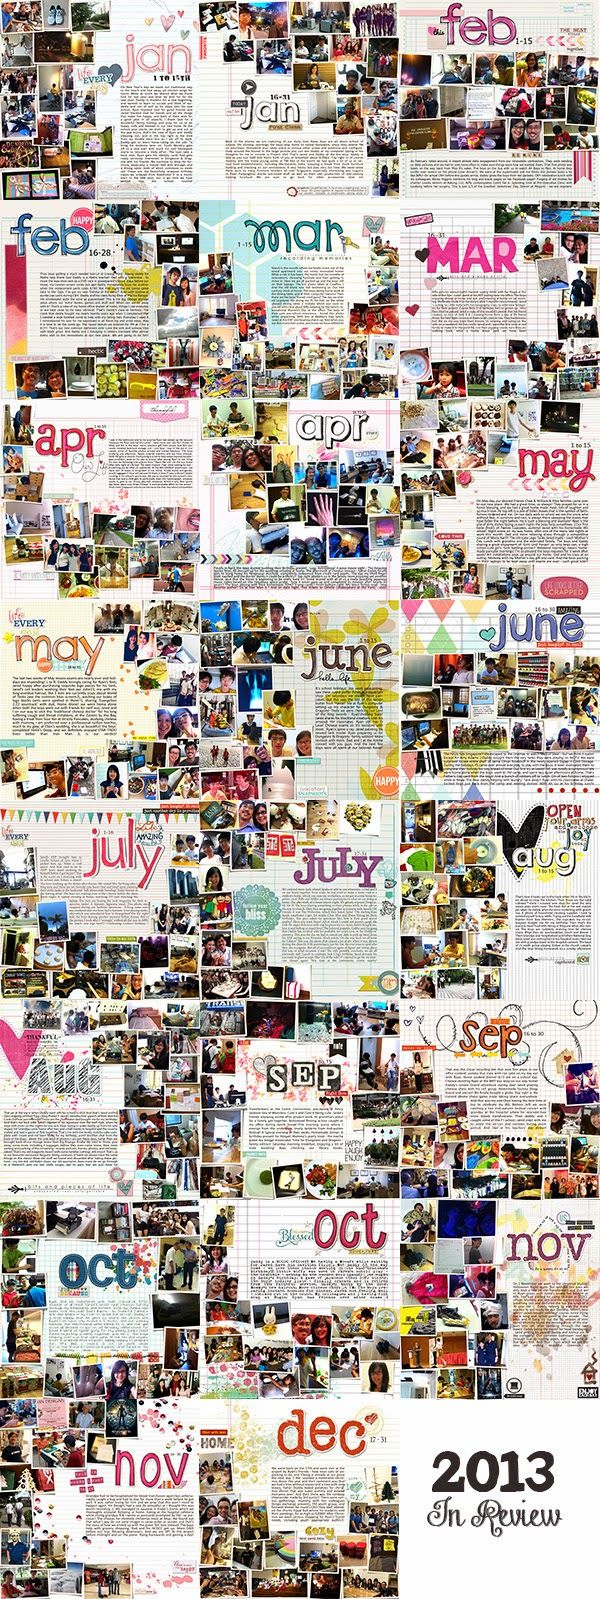 Scrapbook ideas school - Seeing That I Did Not Start This Since Birth I So Need To Do This Senior Year Scrapbook Ideashigh School